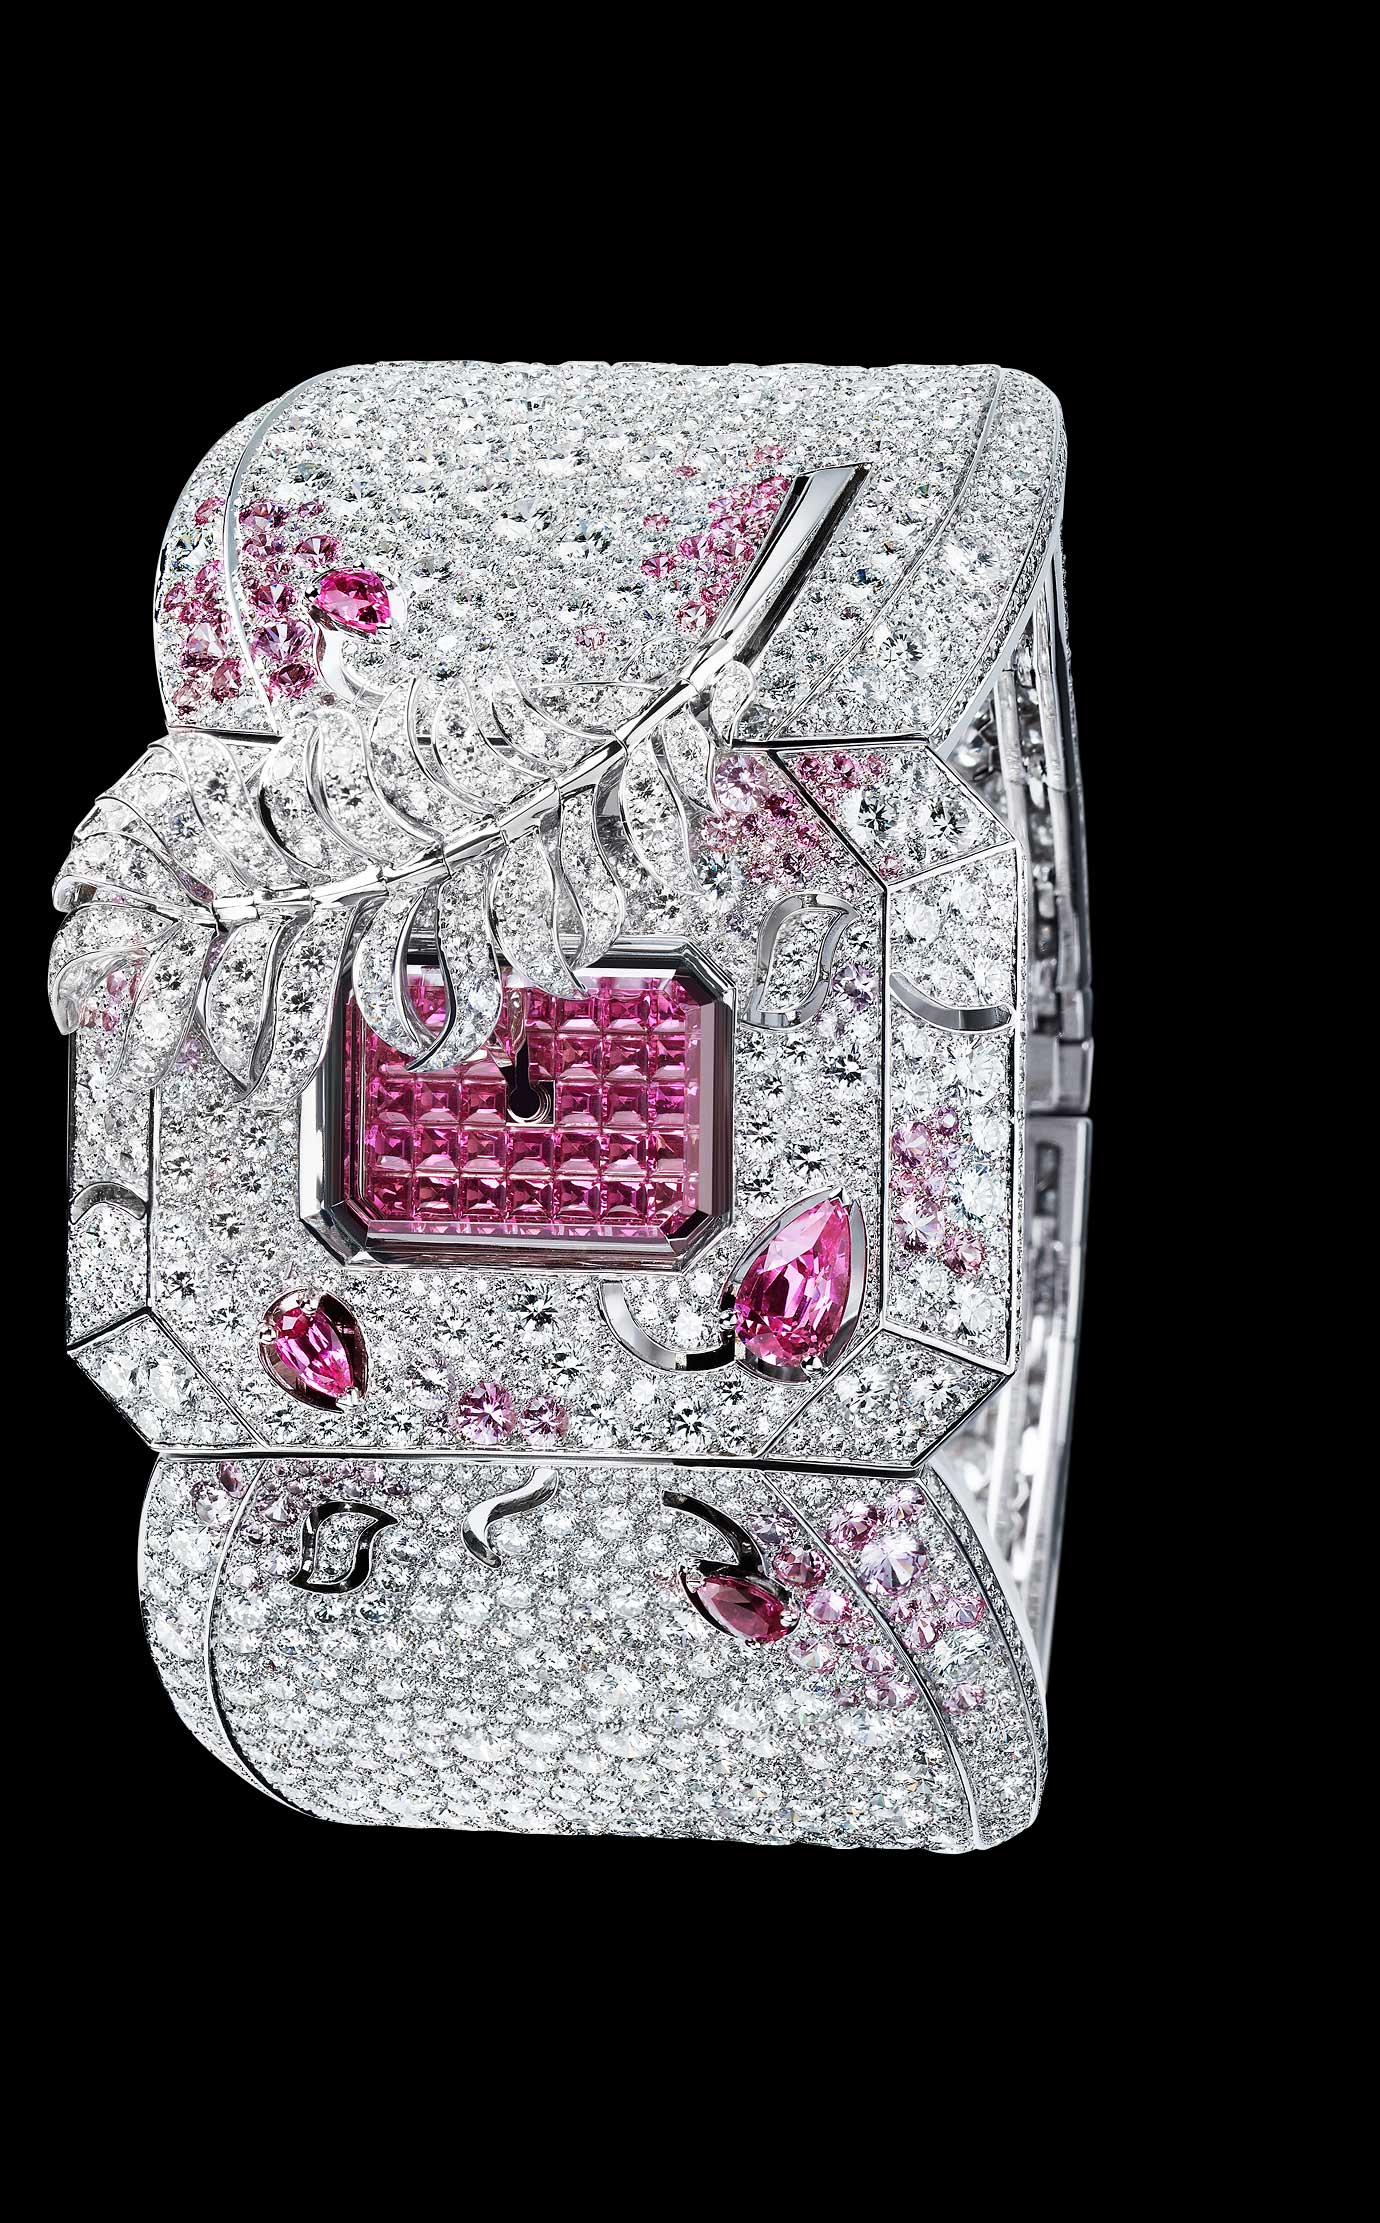 Les Eternelles de CHANEL. Watch in 18K white gold, pink sapphires and diamonds. High precision quartz movement. - Open